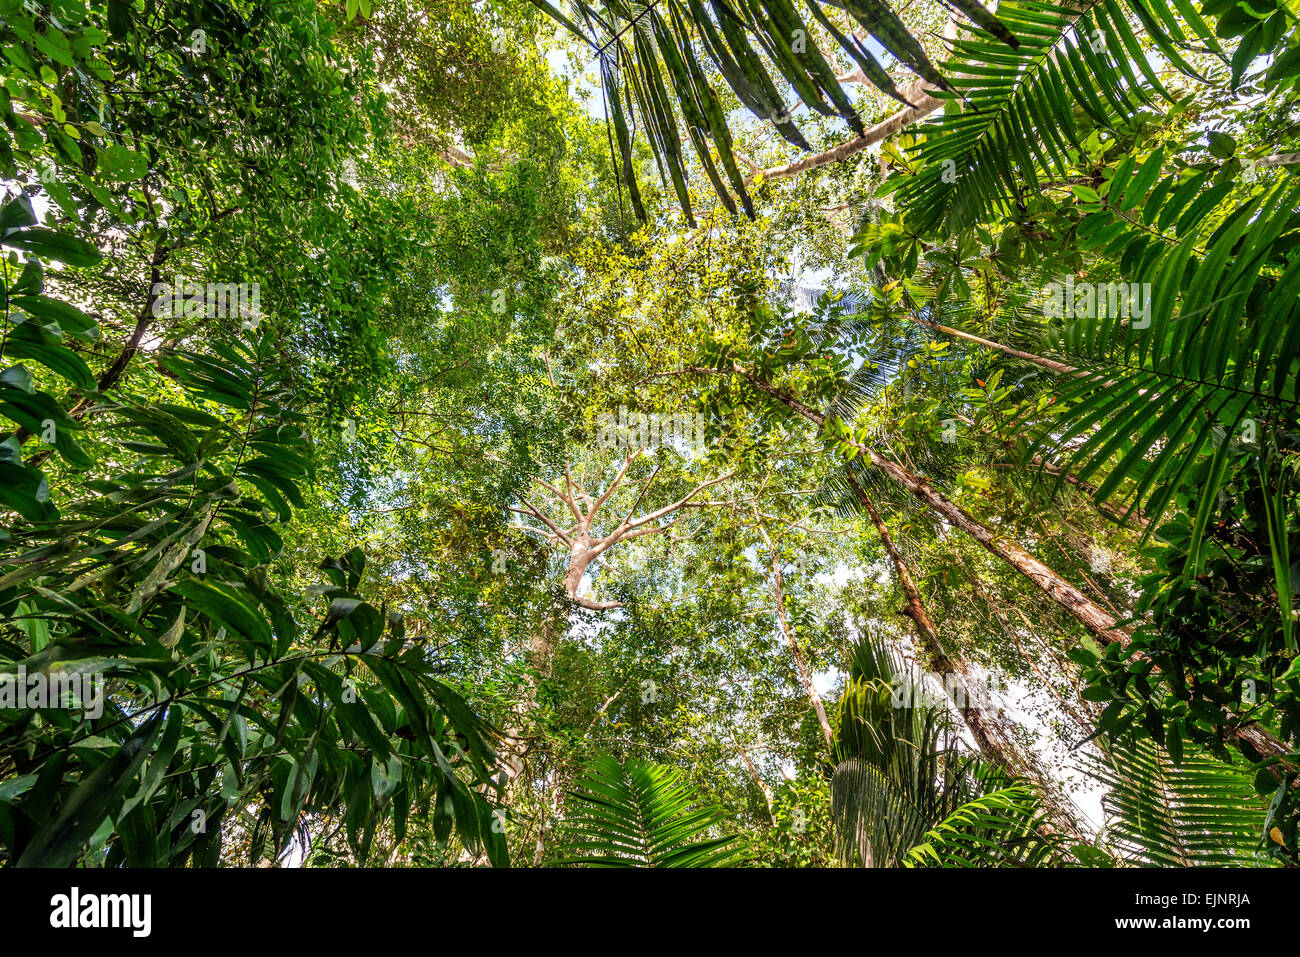 View of the thick lush green canopy of the Amazon rainforest near Iquitos Peru - & Amazon Rainforest Stock Photos u0026 Amazon Rainforest Stock Images - Alamy